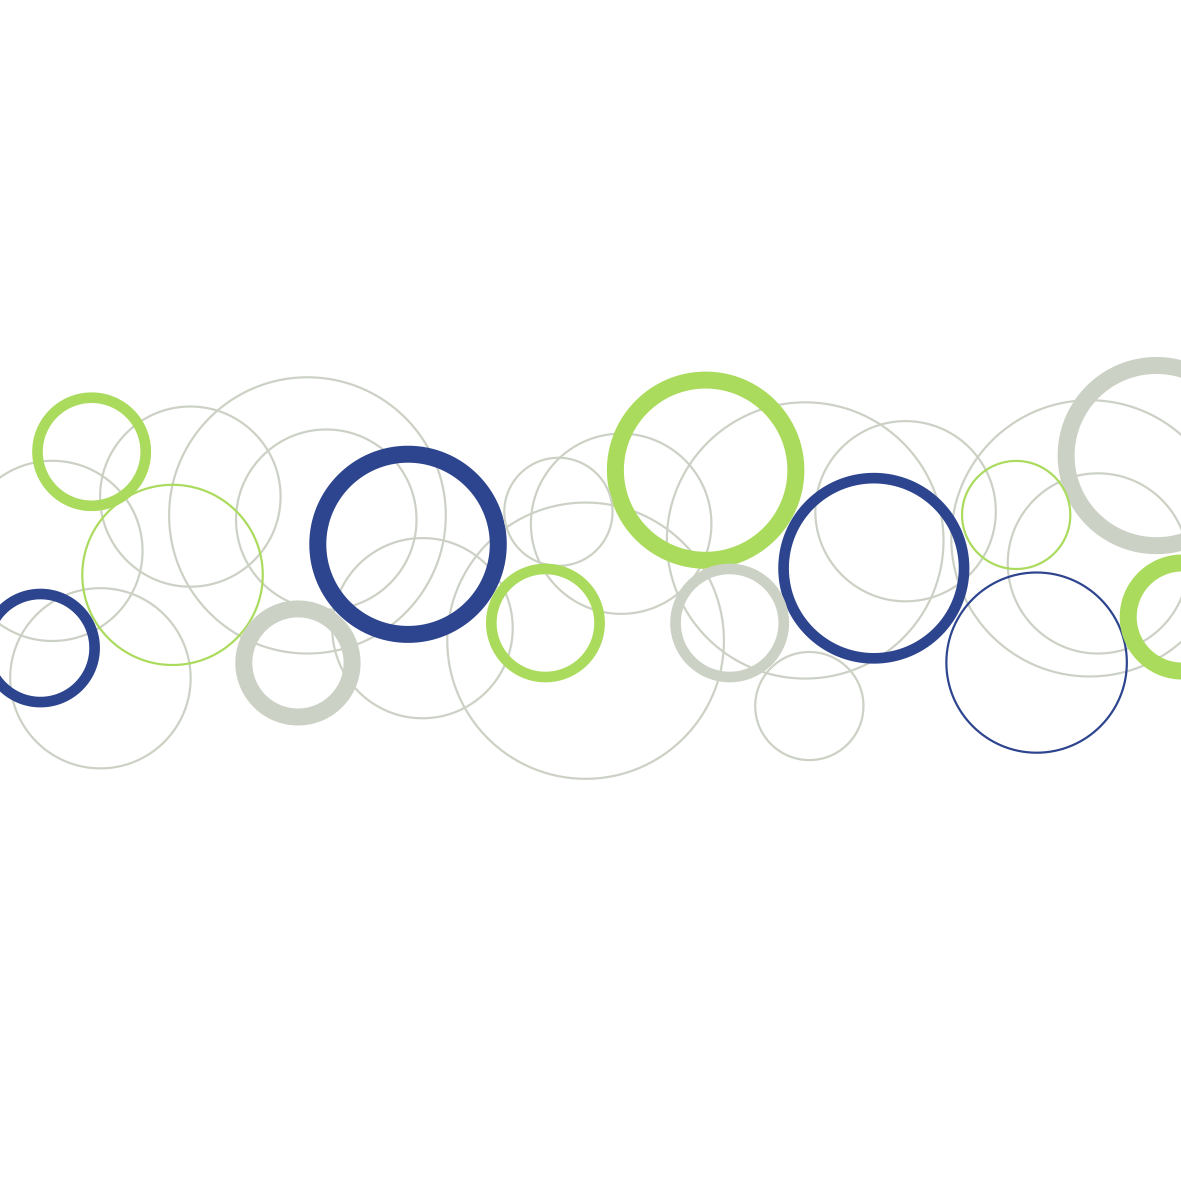 Abstract dots png. Circle point geometry line